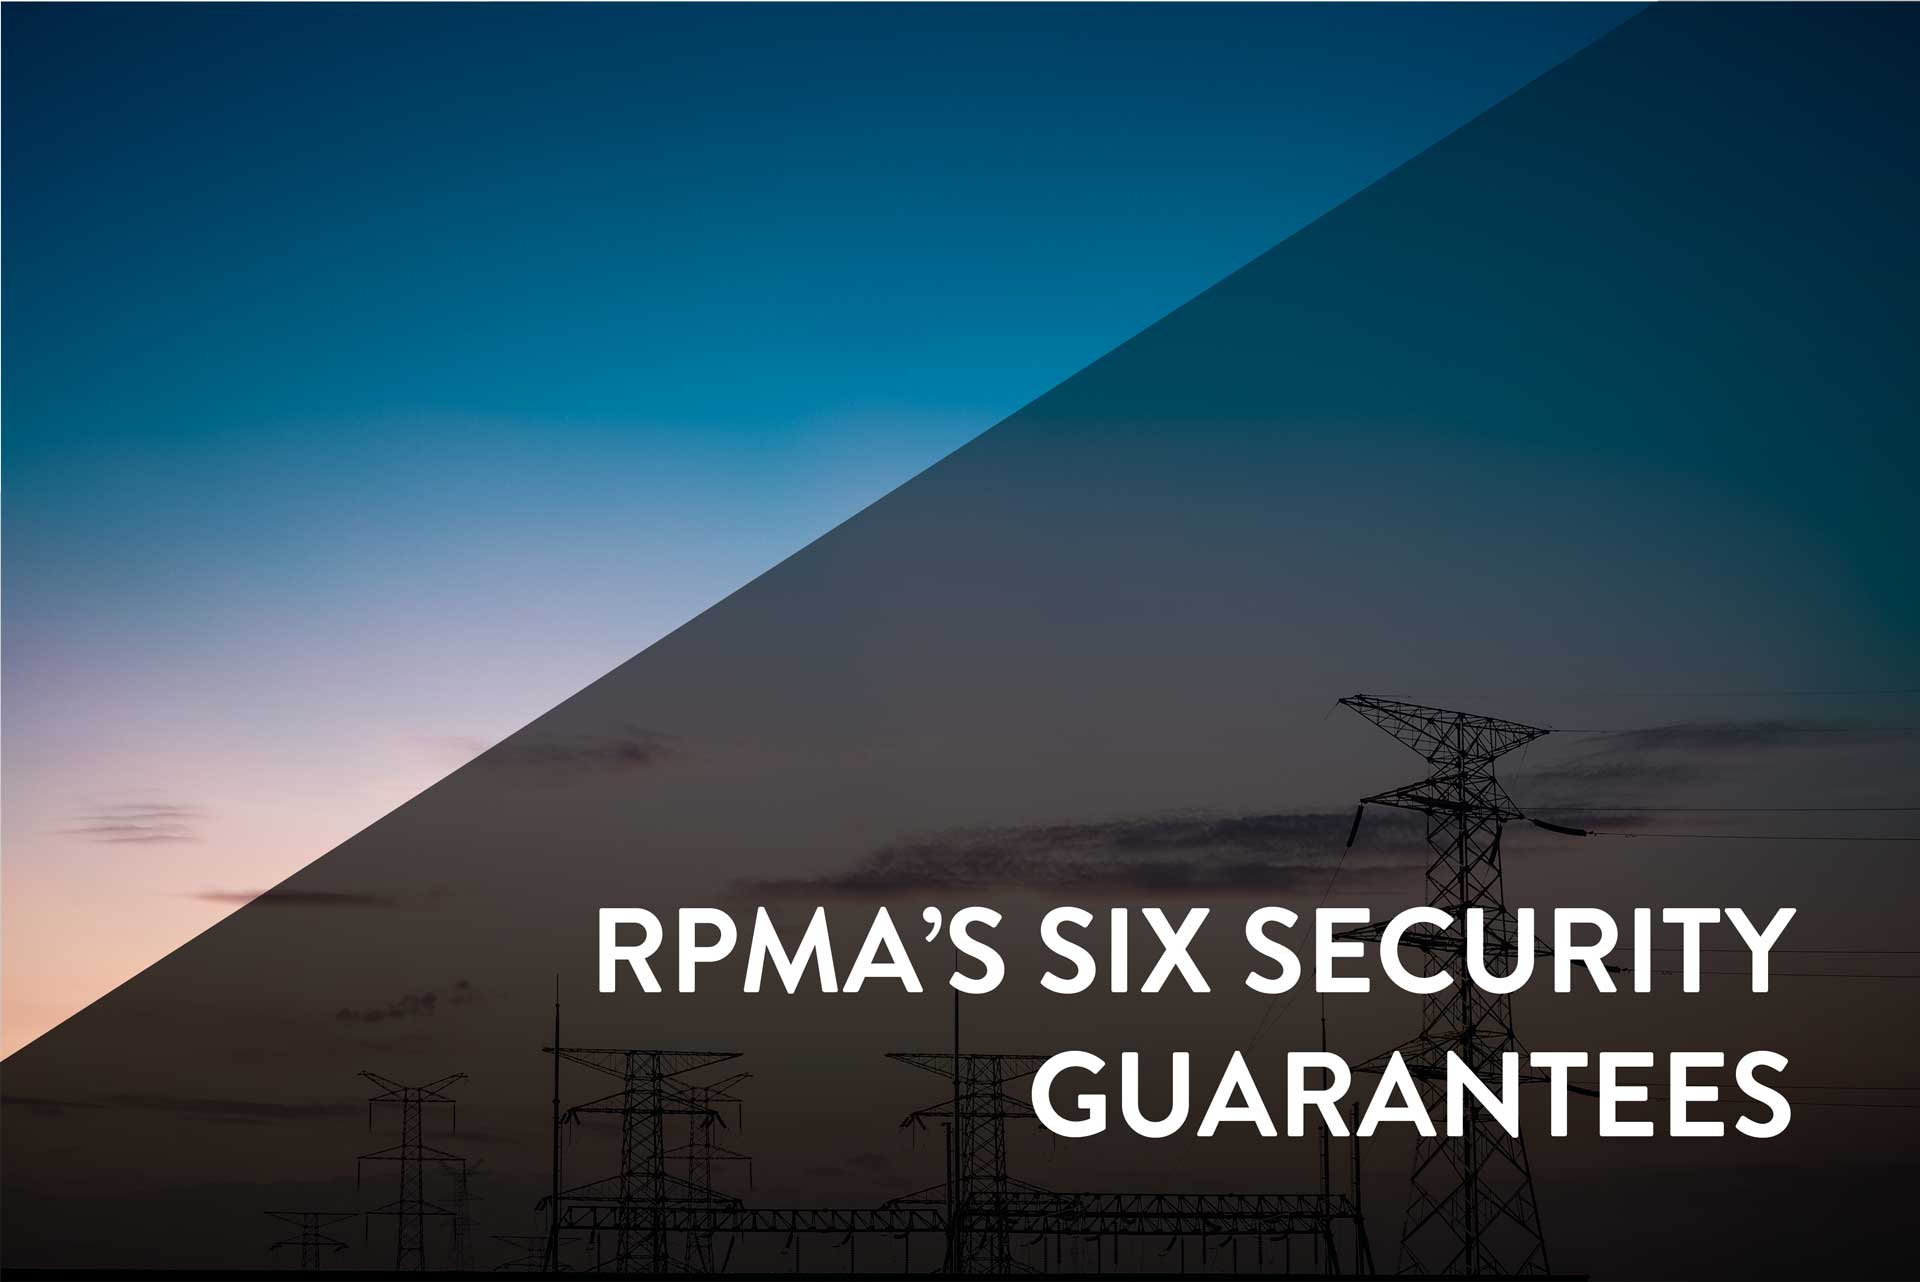 RPMA's Six Security Guarantees